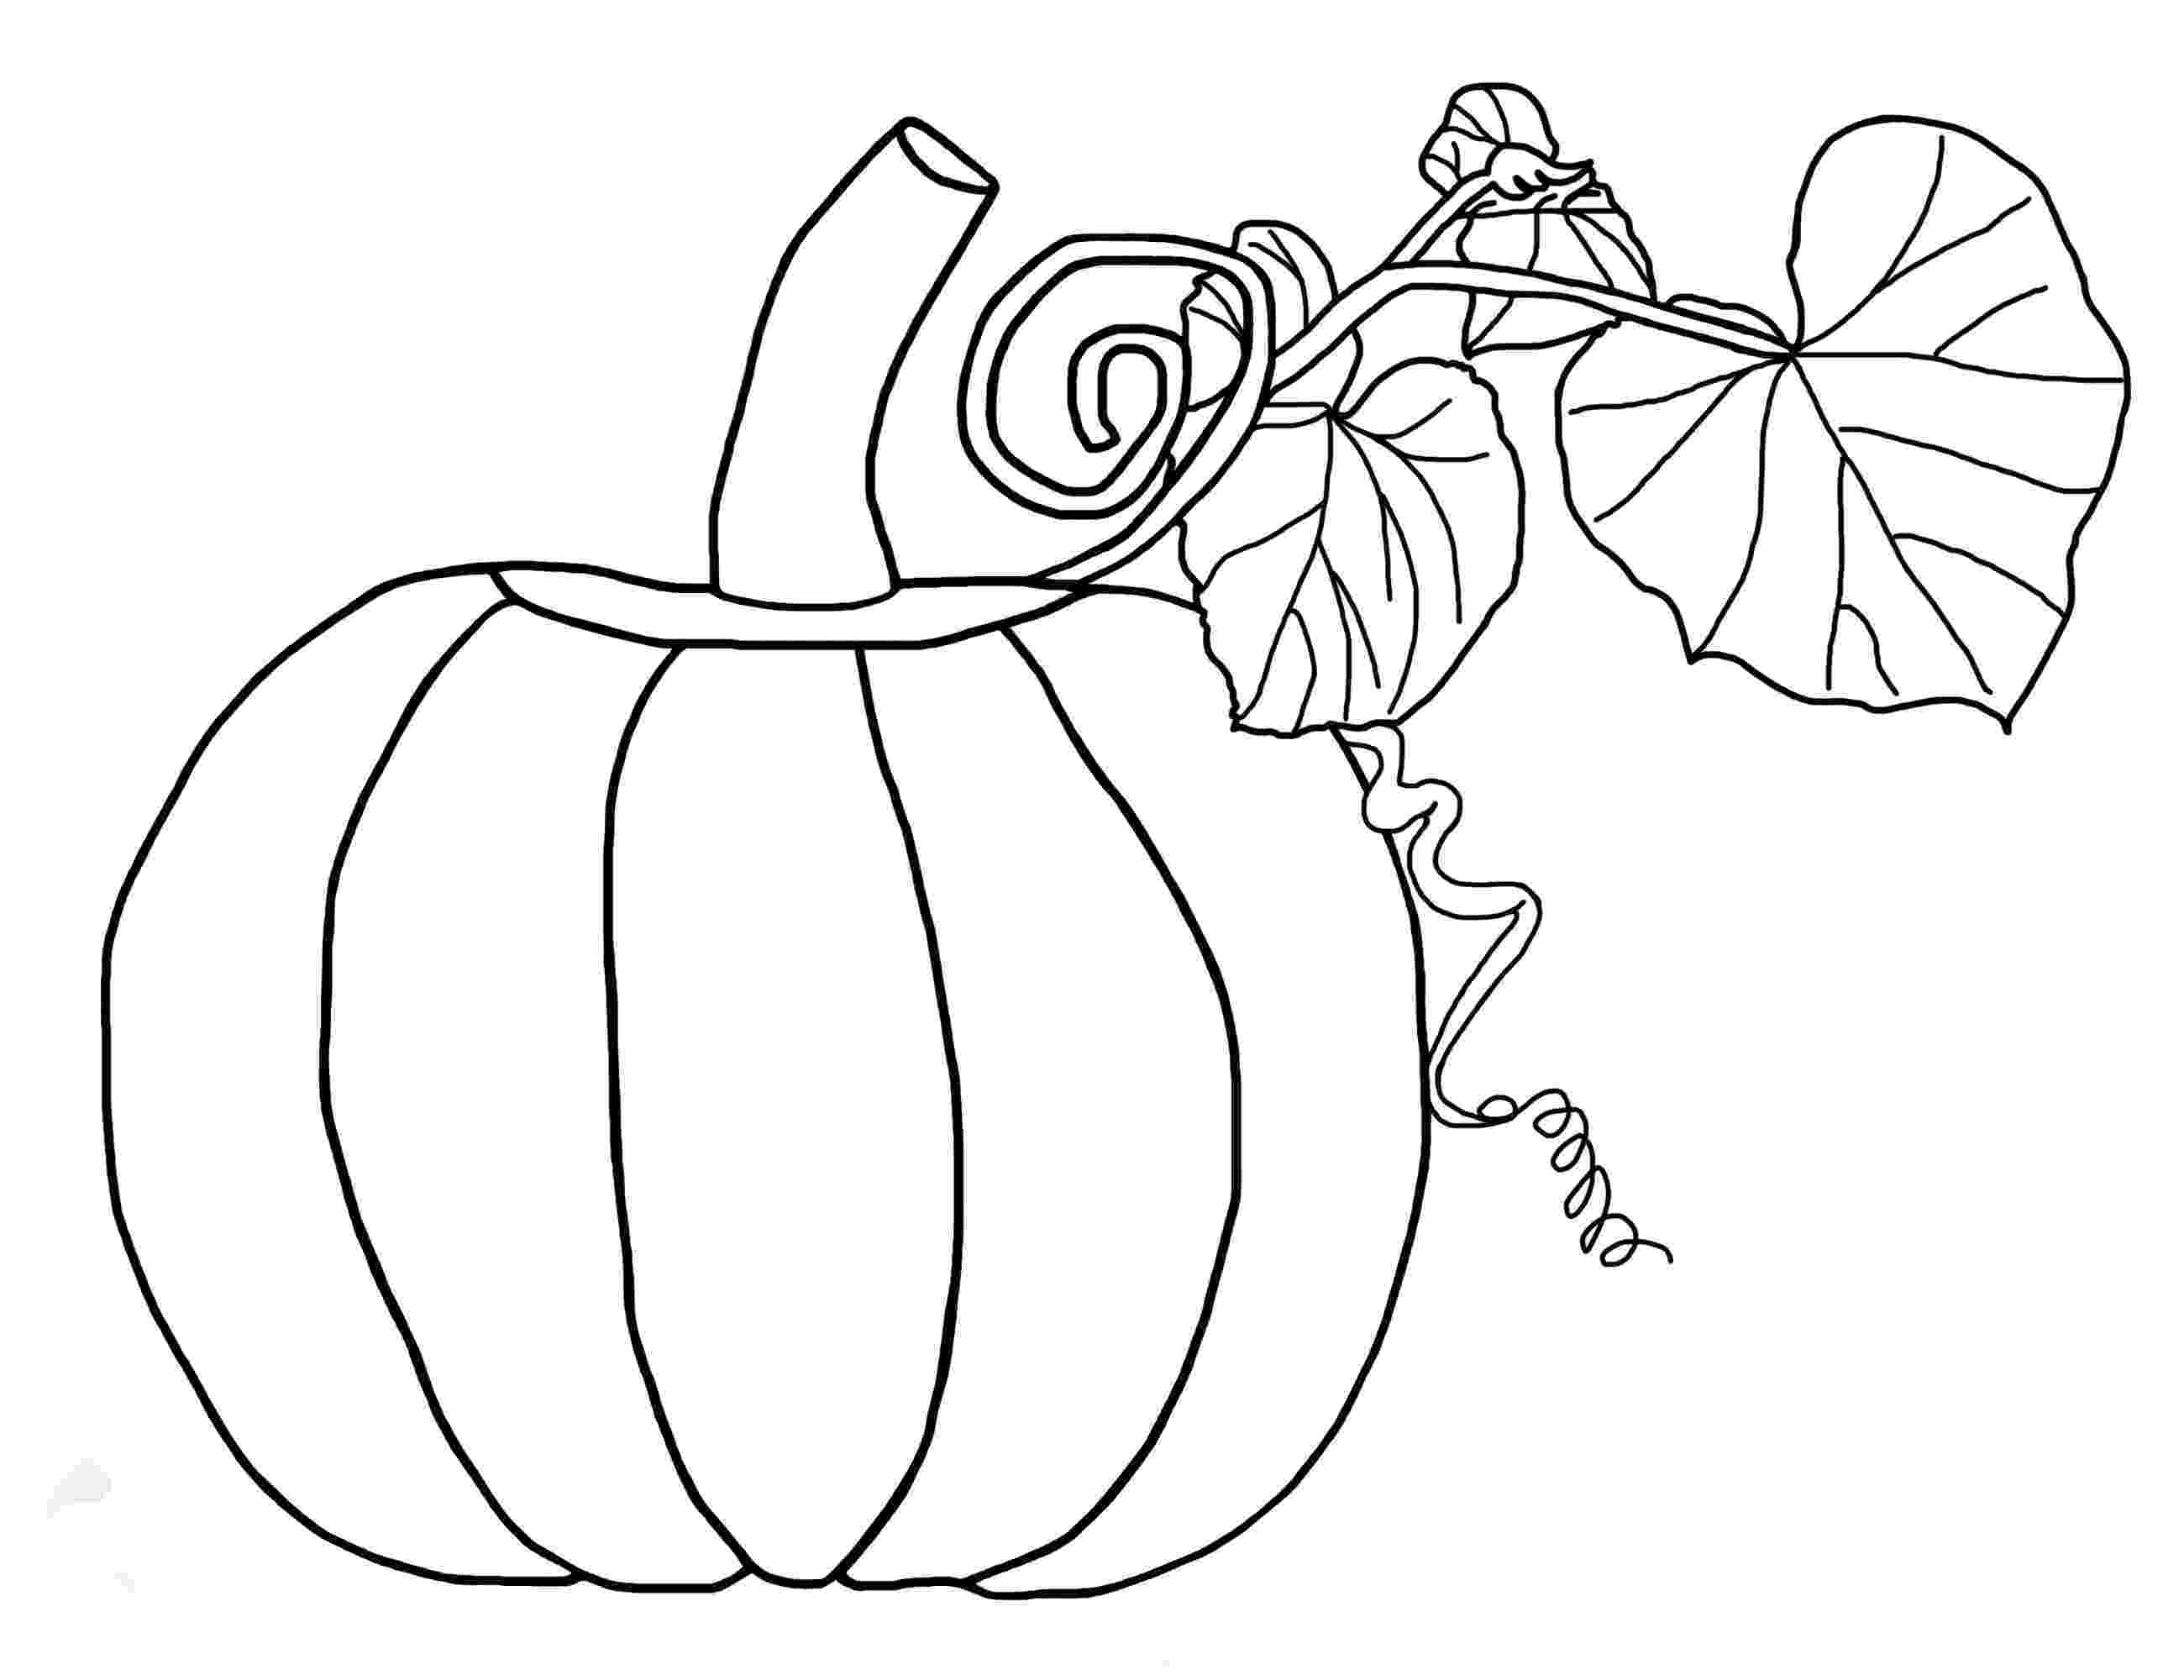 coloring pages pumpkins print free printable pumpkin coloring pages for kids cool2bkids pumpkins pages coloring print